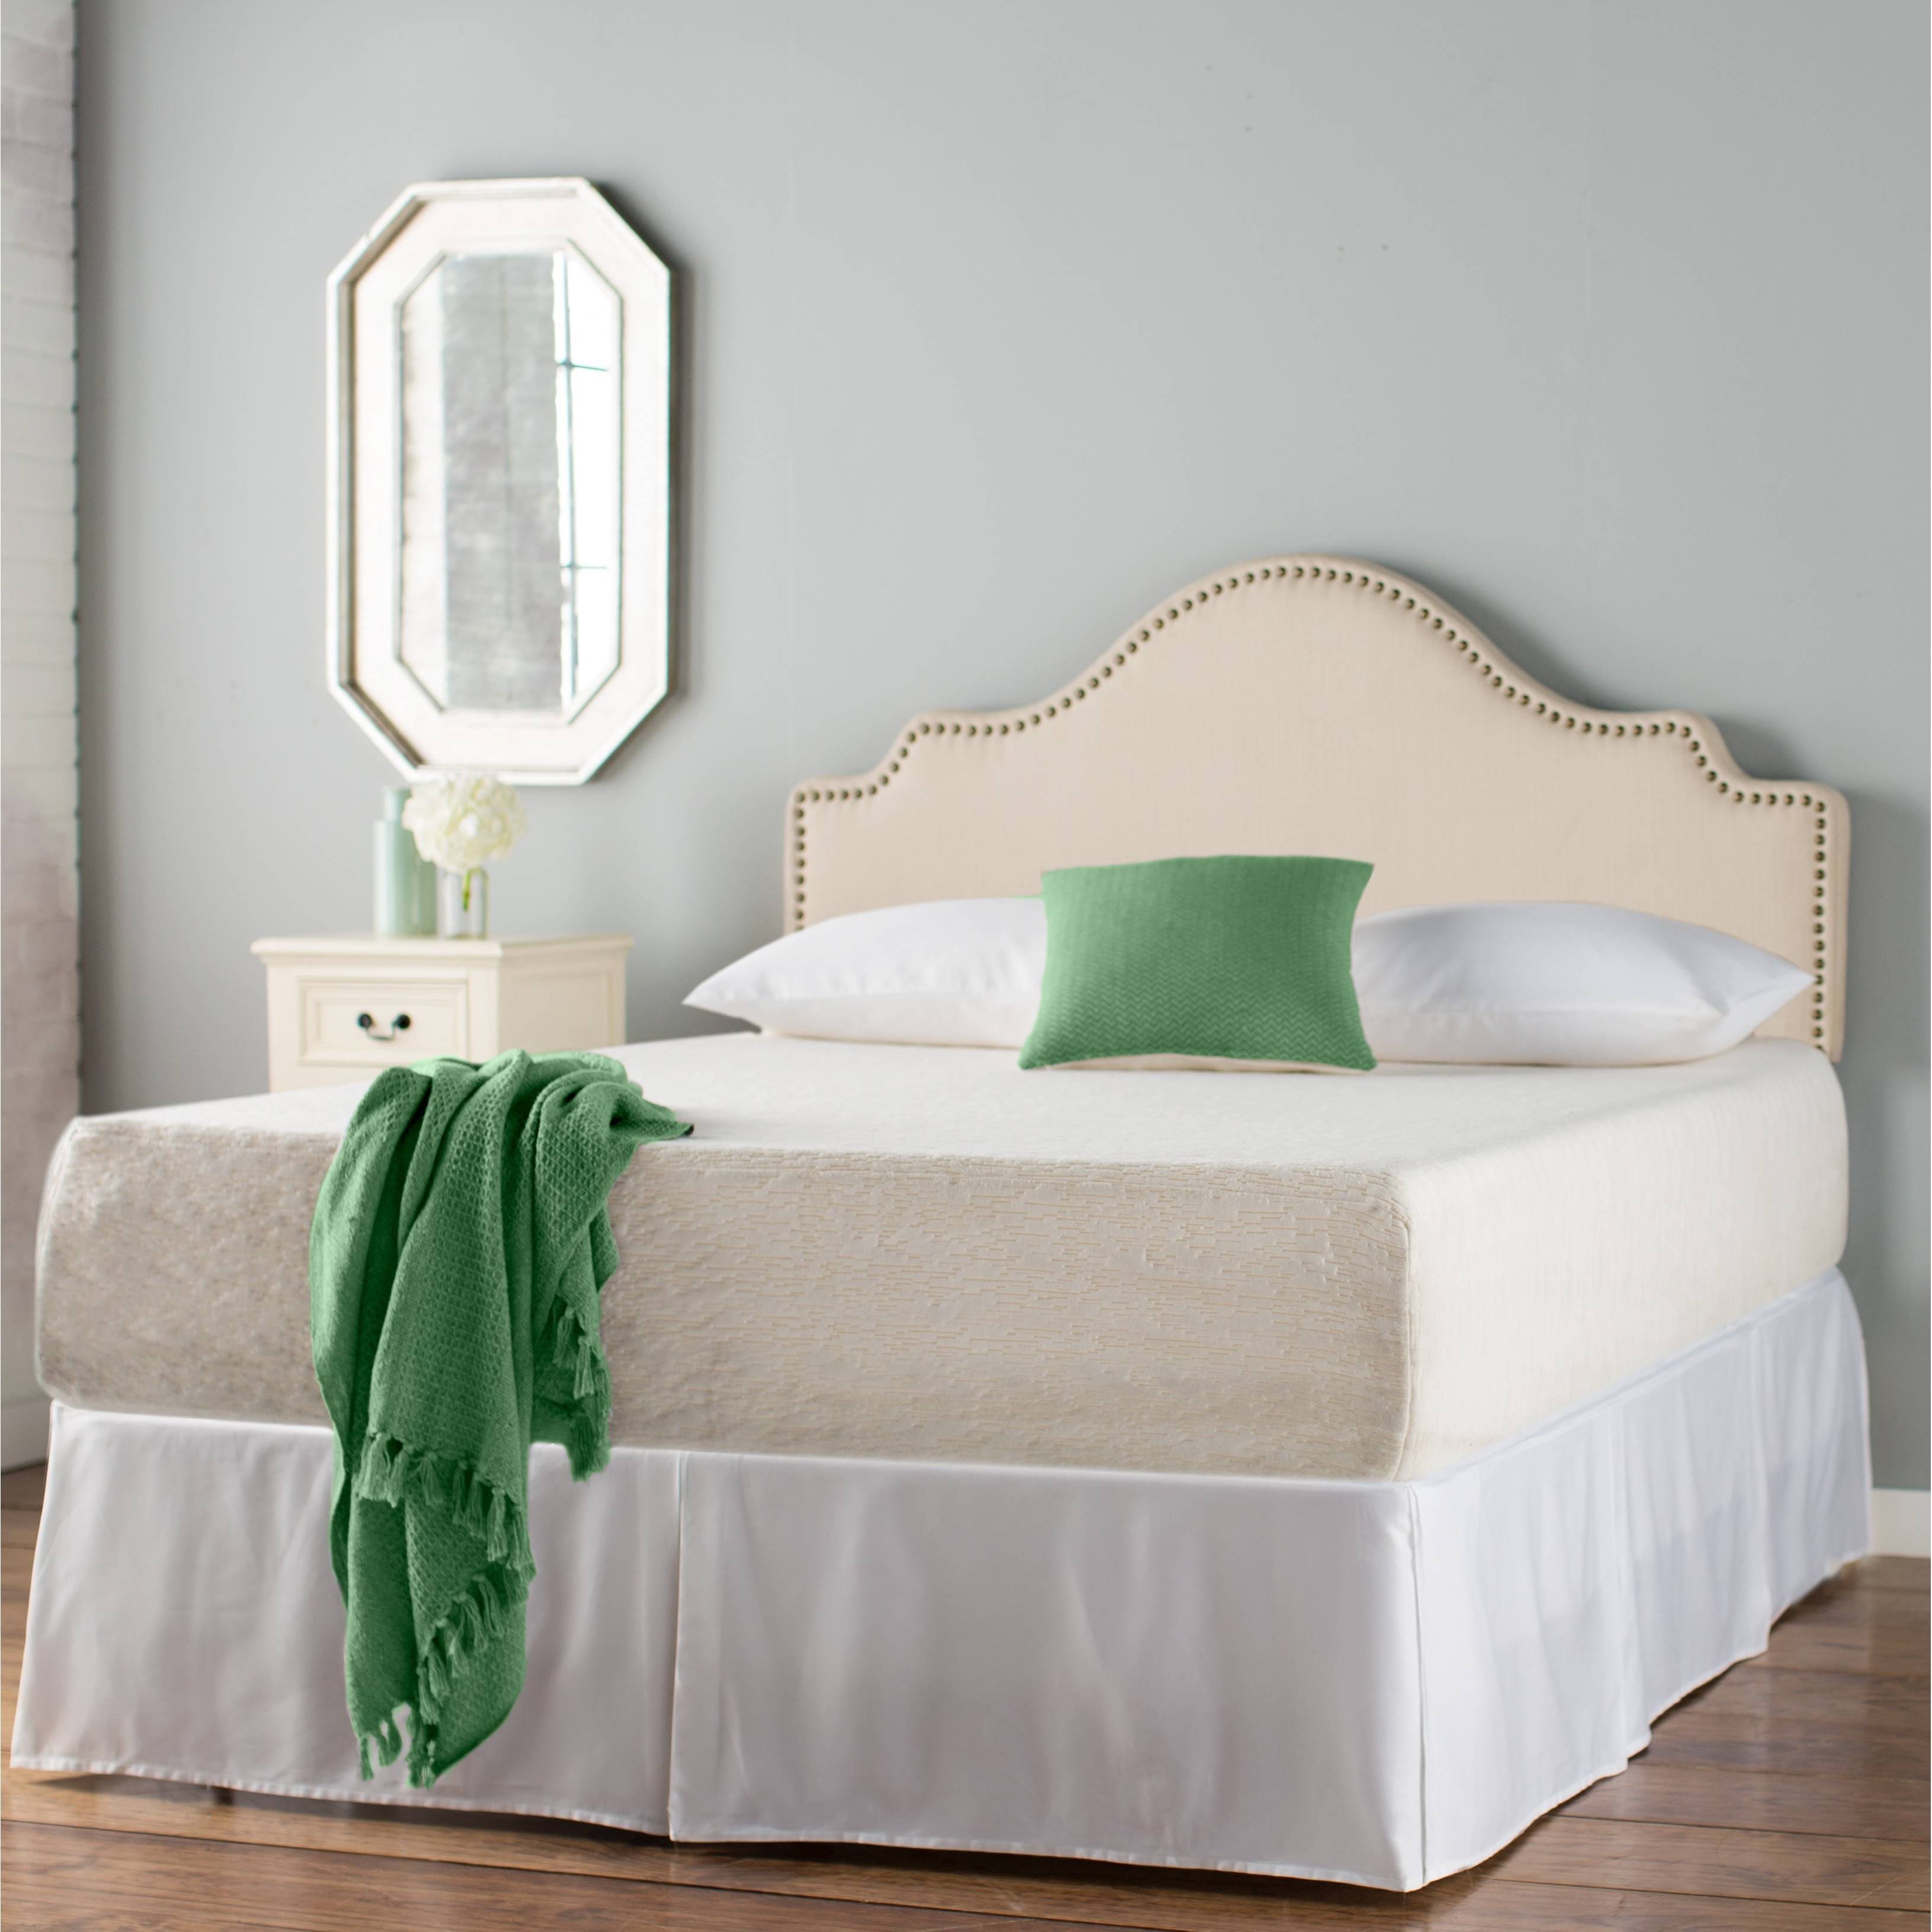 Bedroom: Framed Almunium Wall Mirror Cream Contemporary Leather inside Cream Wall Mirrors (Image 7 of 25)